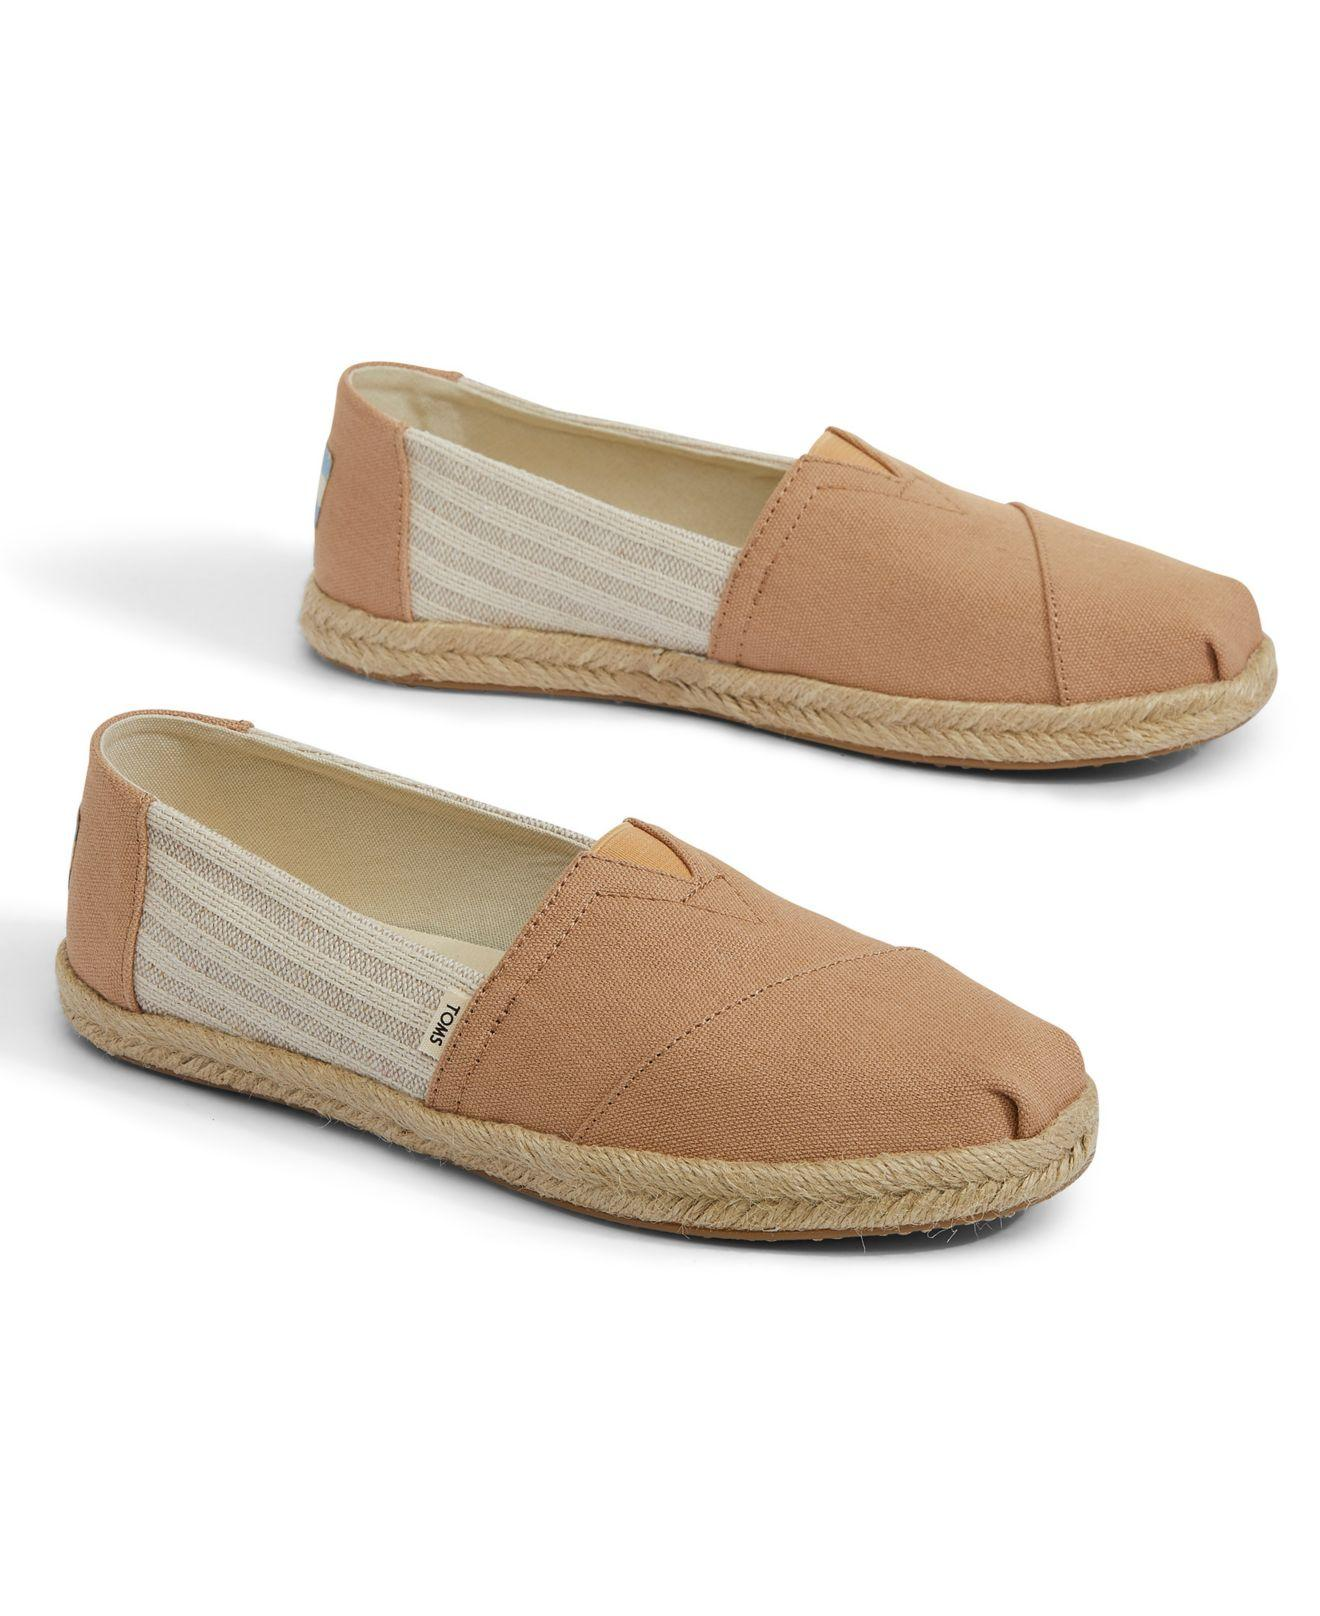 5ff30591df TOMS Honey Ivy League Stripes Women's Espadrilles in Natural - Lyst